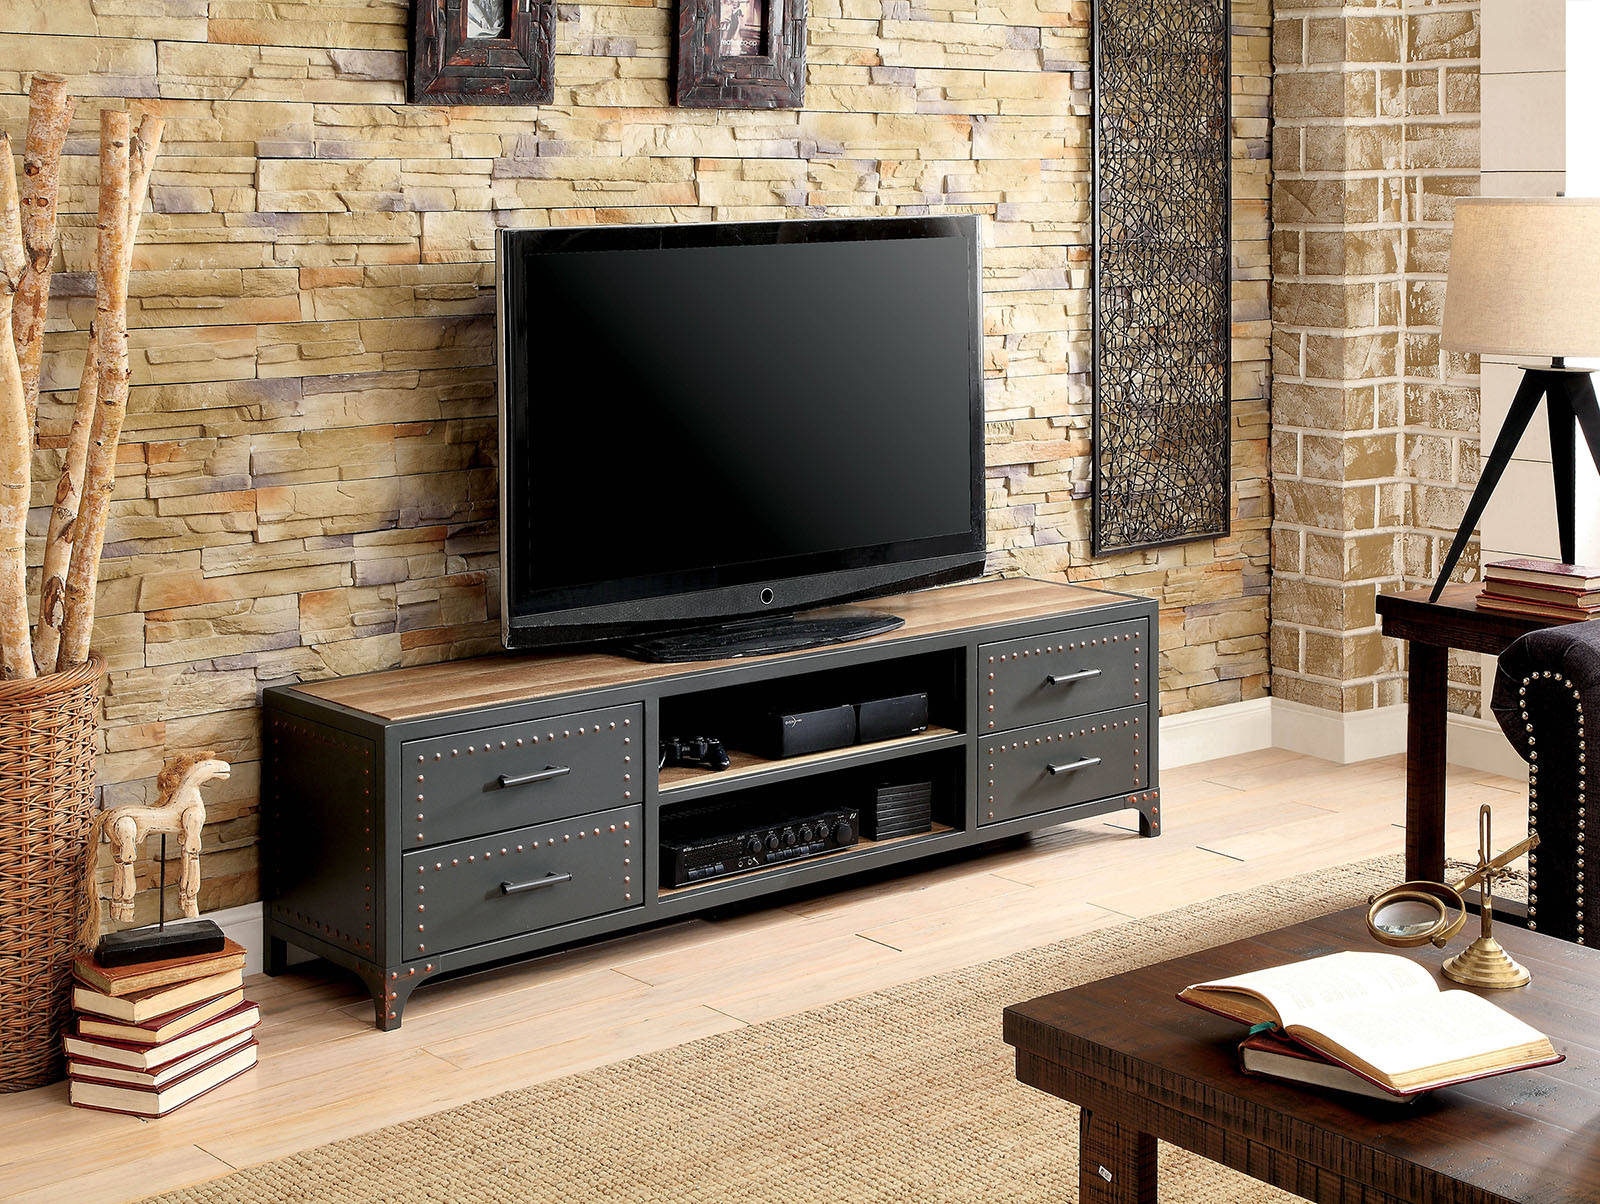 Where To Buy Black TV Stands 60 Inch At A Low Price